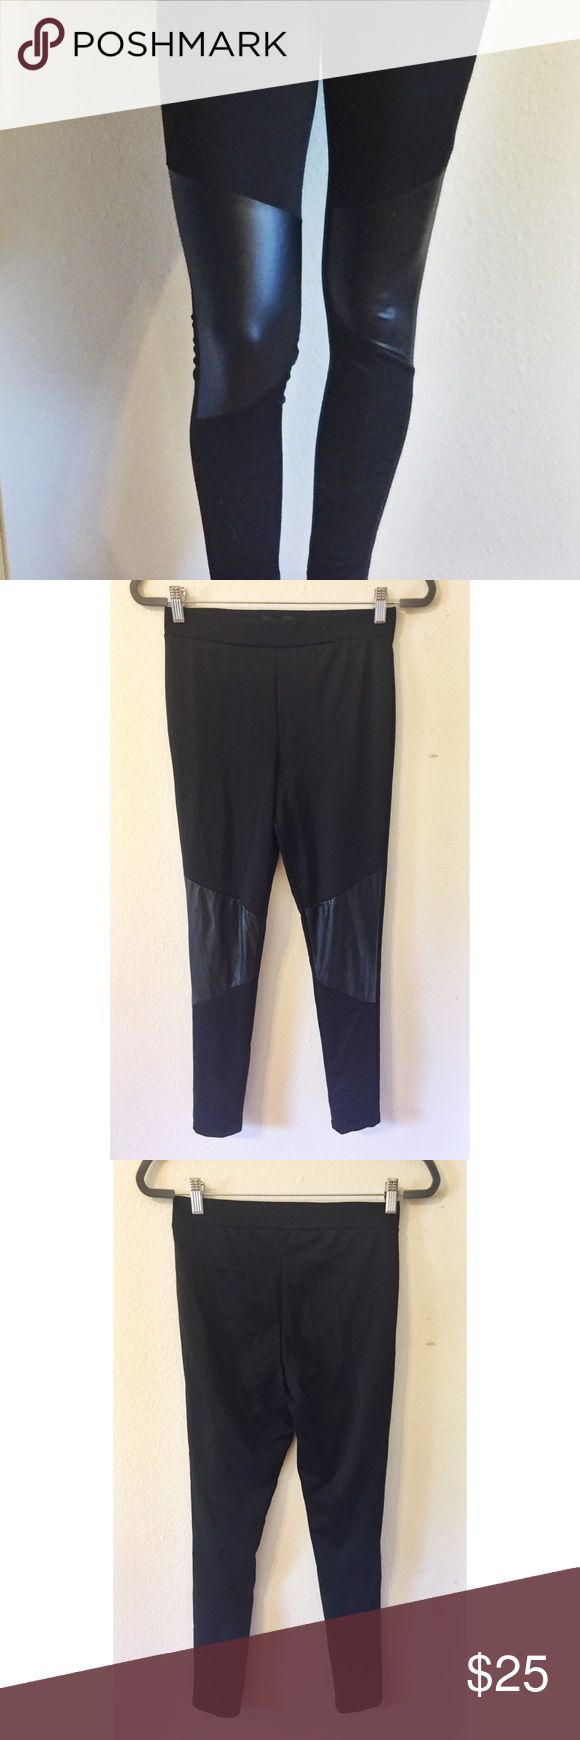 "Kardashian Kollection leather panel leggings Kardashian Kollection high waist ""wet look"" leggings with faux leather panels. 28"" inseam, 10"" front rise, 14"" back rise. Size medium, fits like a 4-6. Like new condition. Kardashian Kollection Pants Leggings"